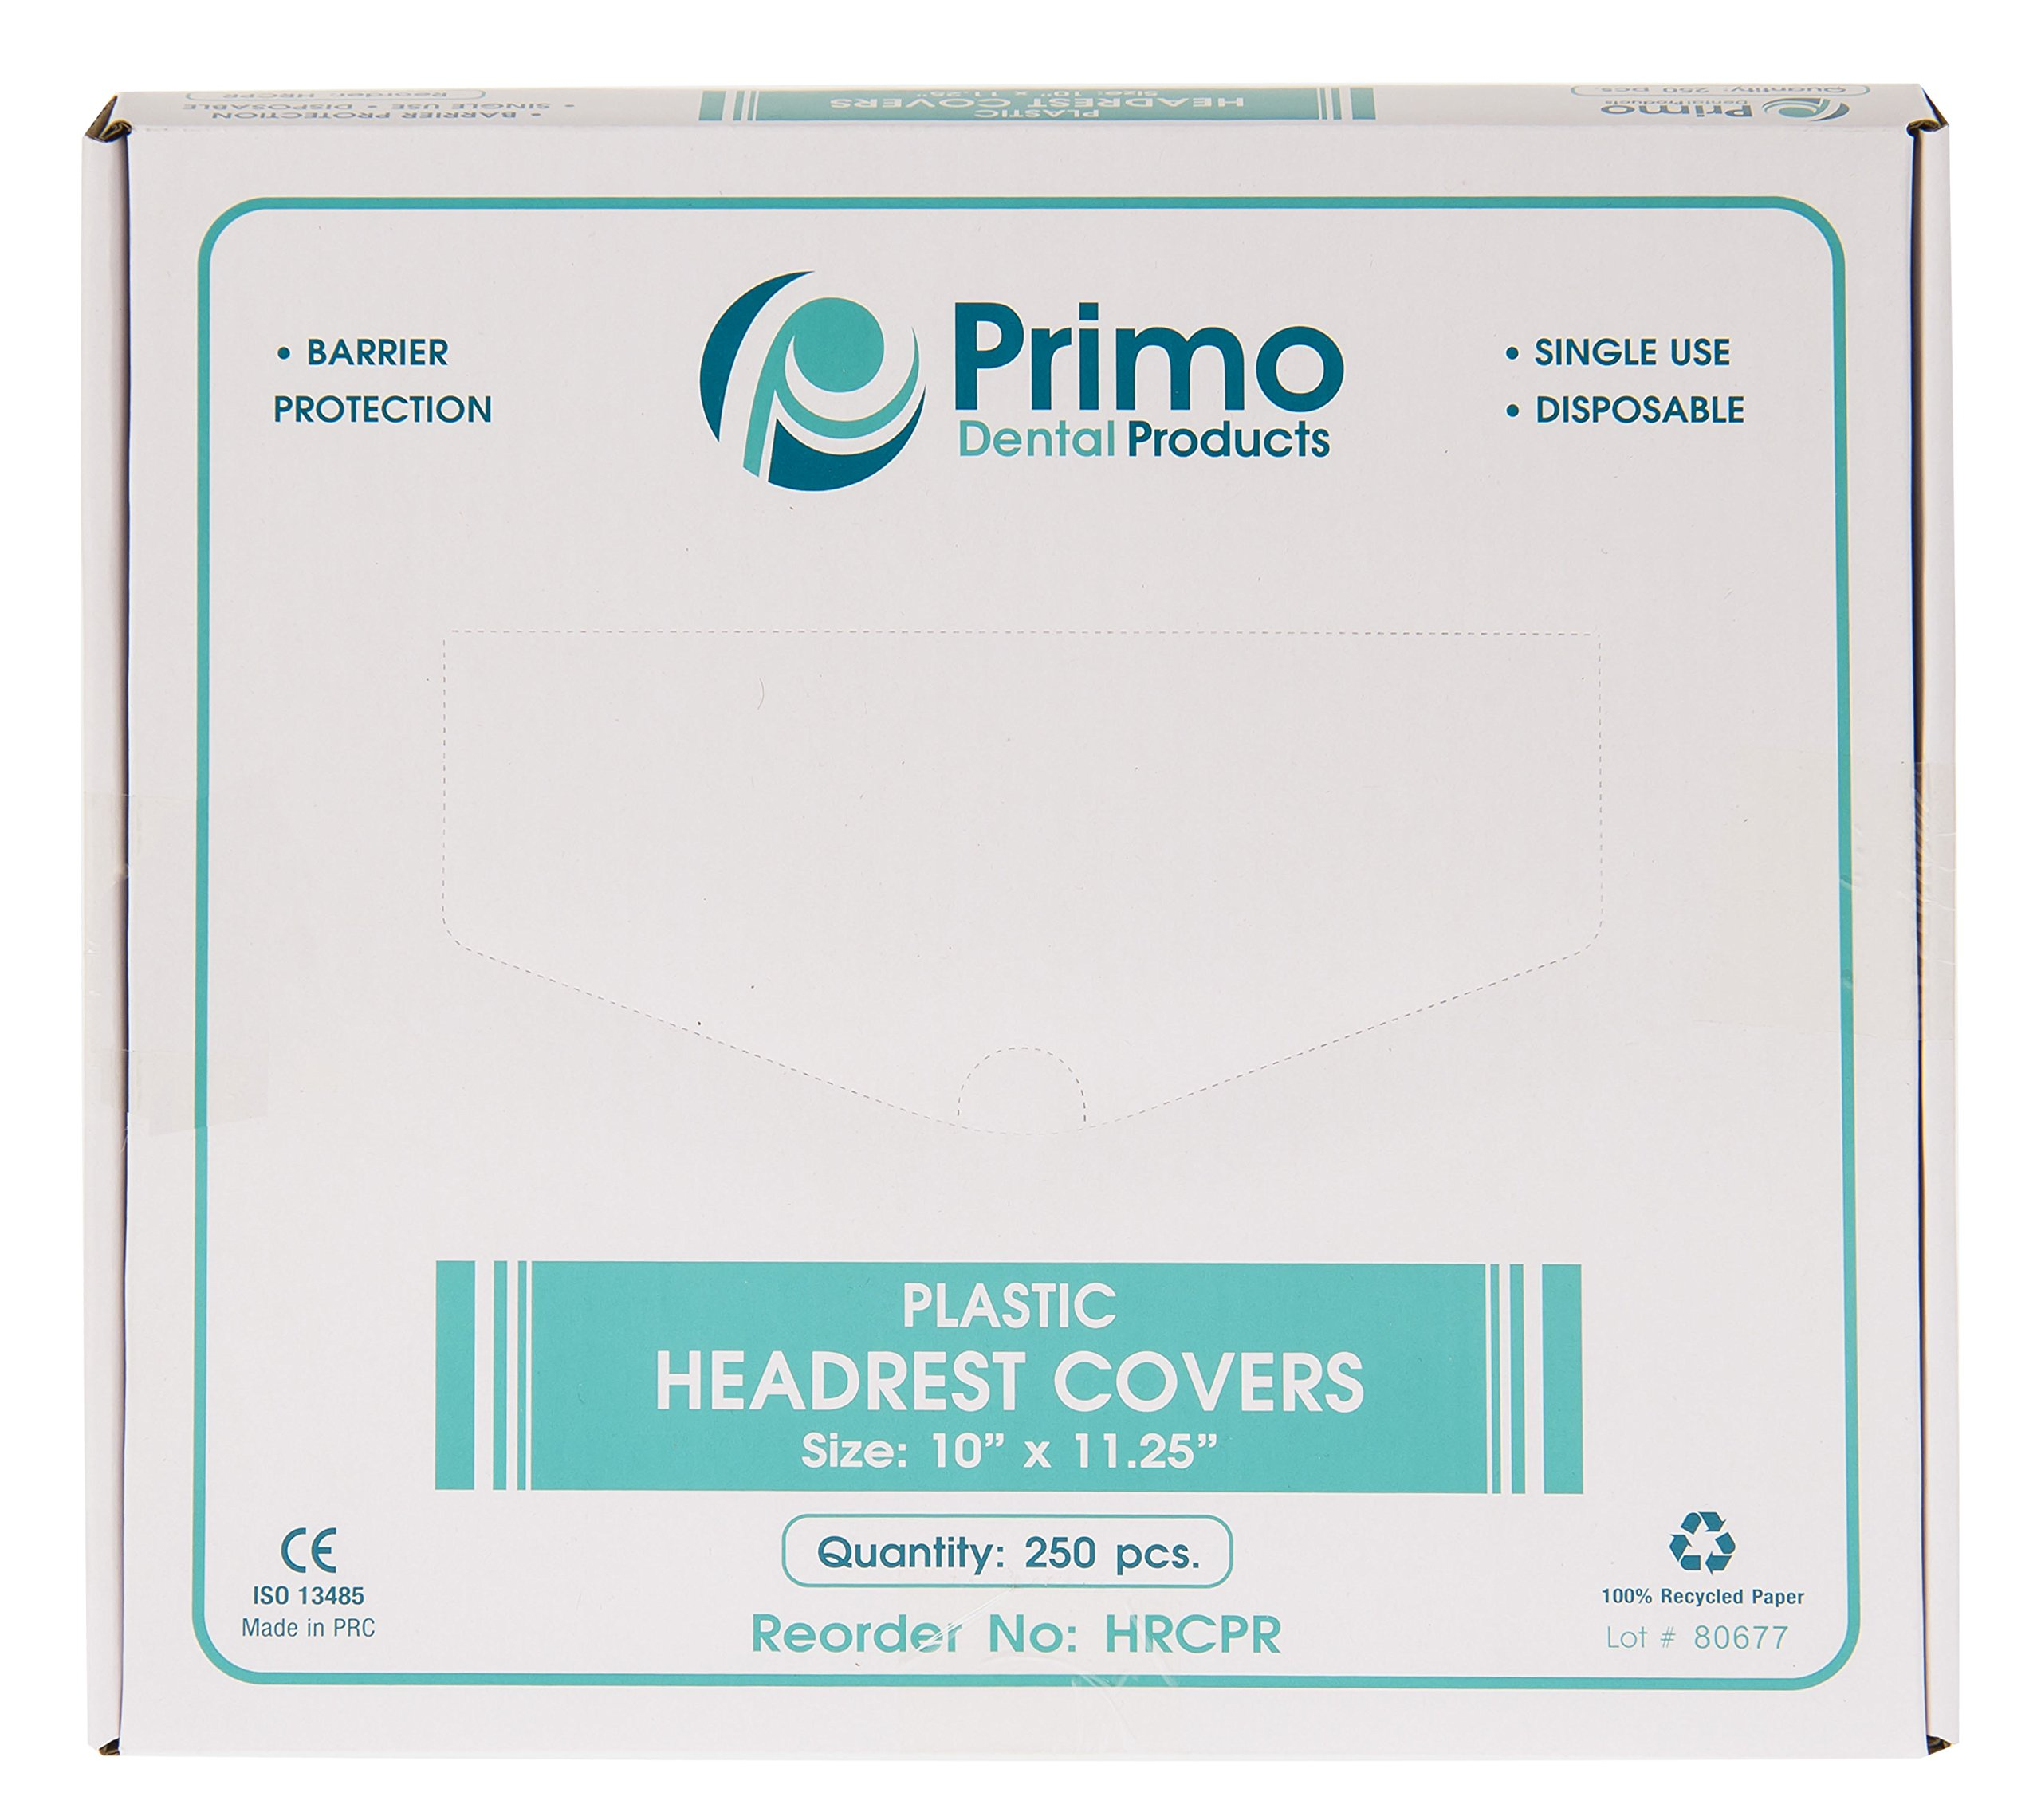 Primo Dental Products HRCPR Headrest Covers Plastic, Regular, 10'' x 11.25'' (Pack of 250) by Primo Dental Products